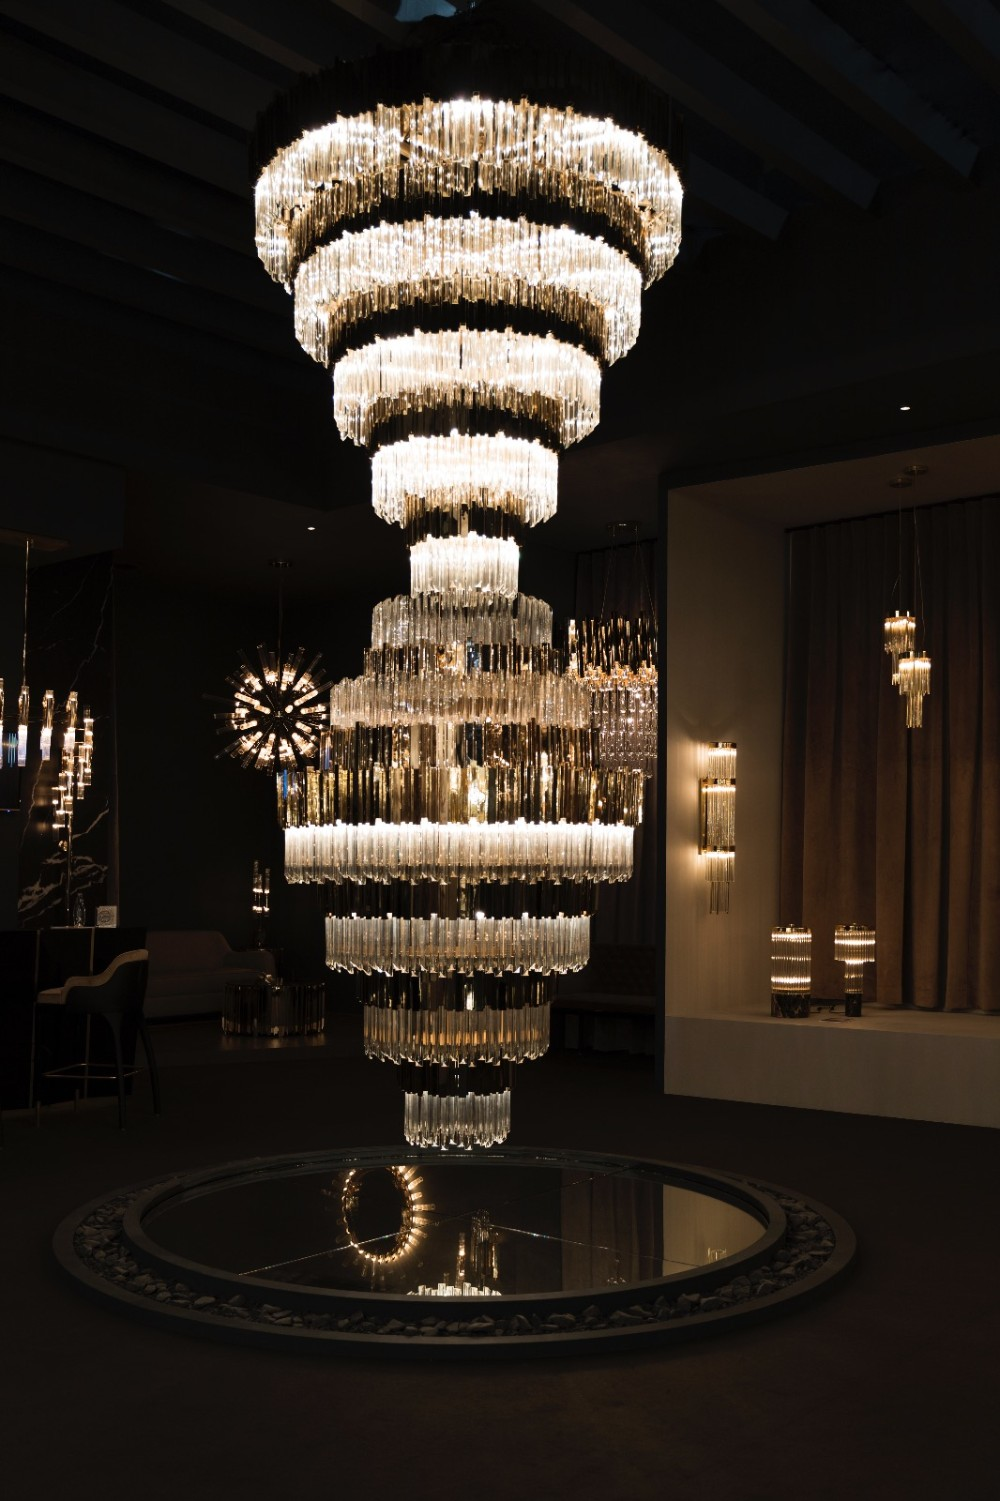 new lighting designs Discover LUXXU's New Lighting Designs At iSaloni 2019 Discover LUXXUs New Lighting Designs At iSaloni 2019 02